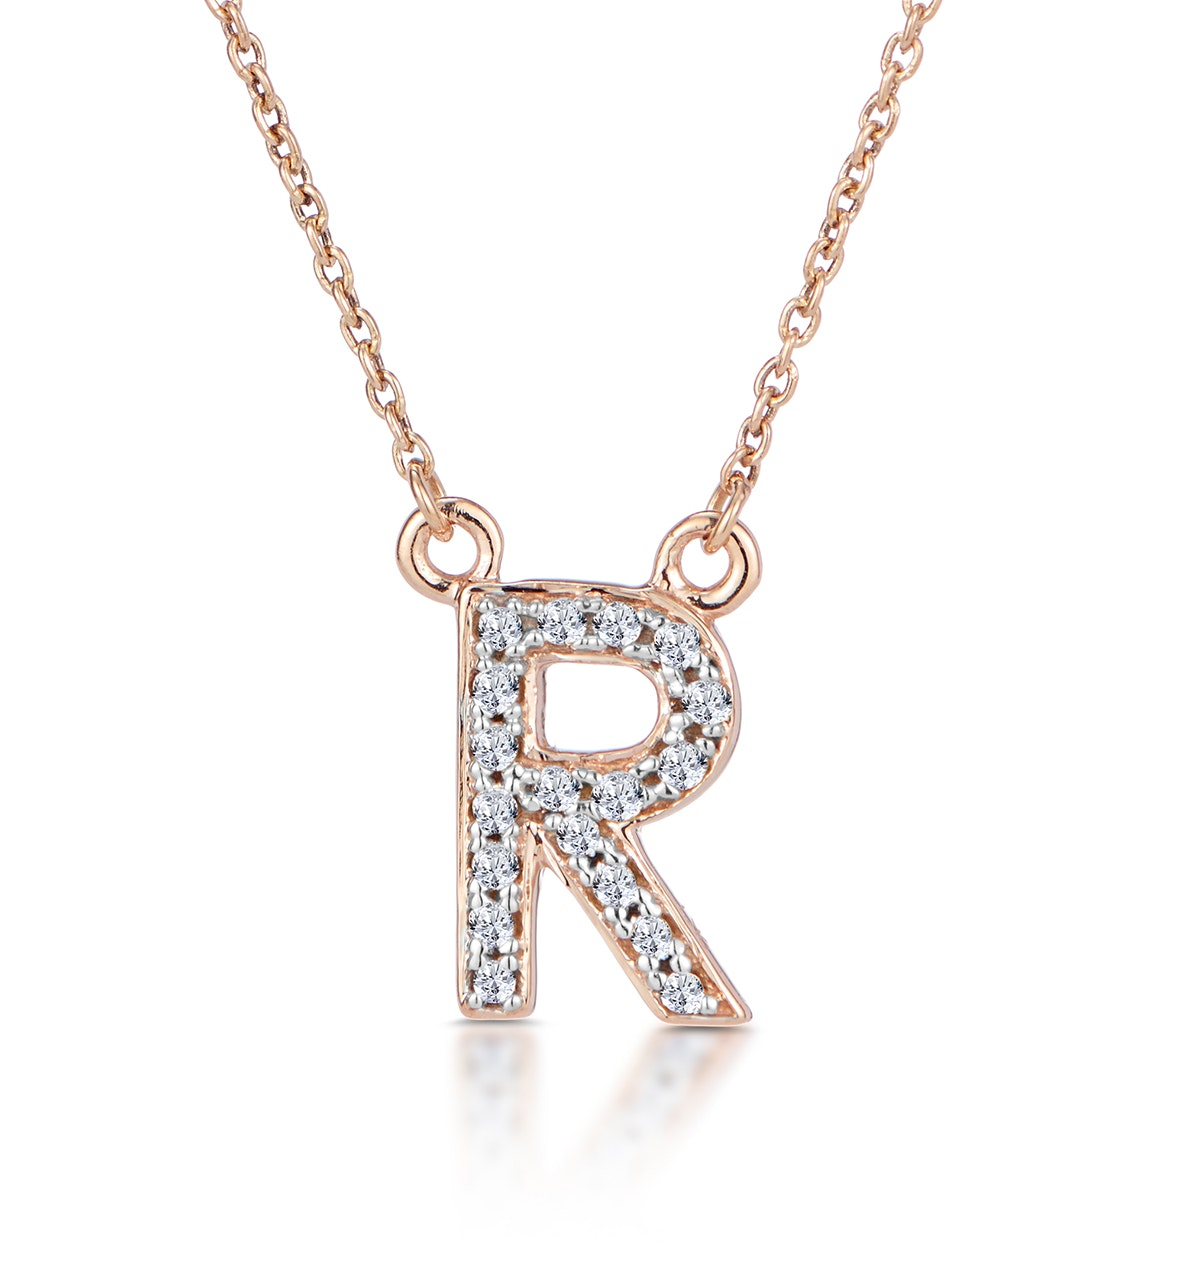 Initial 'R' Necklace Diamond Encrusted Pave Set in 9K Rose Gold